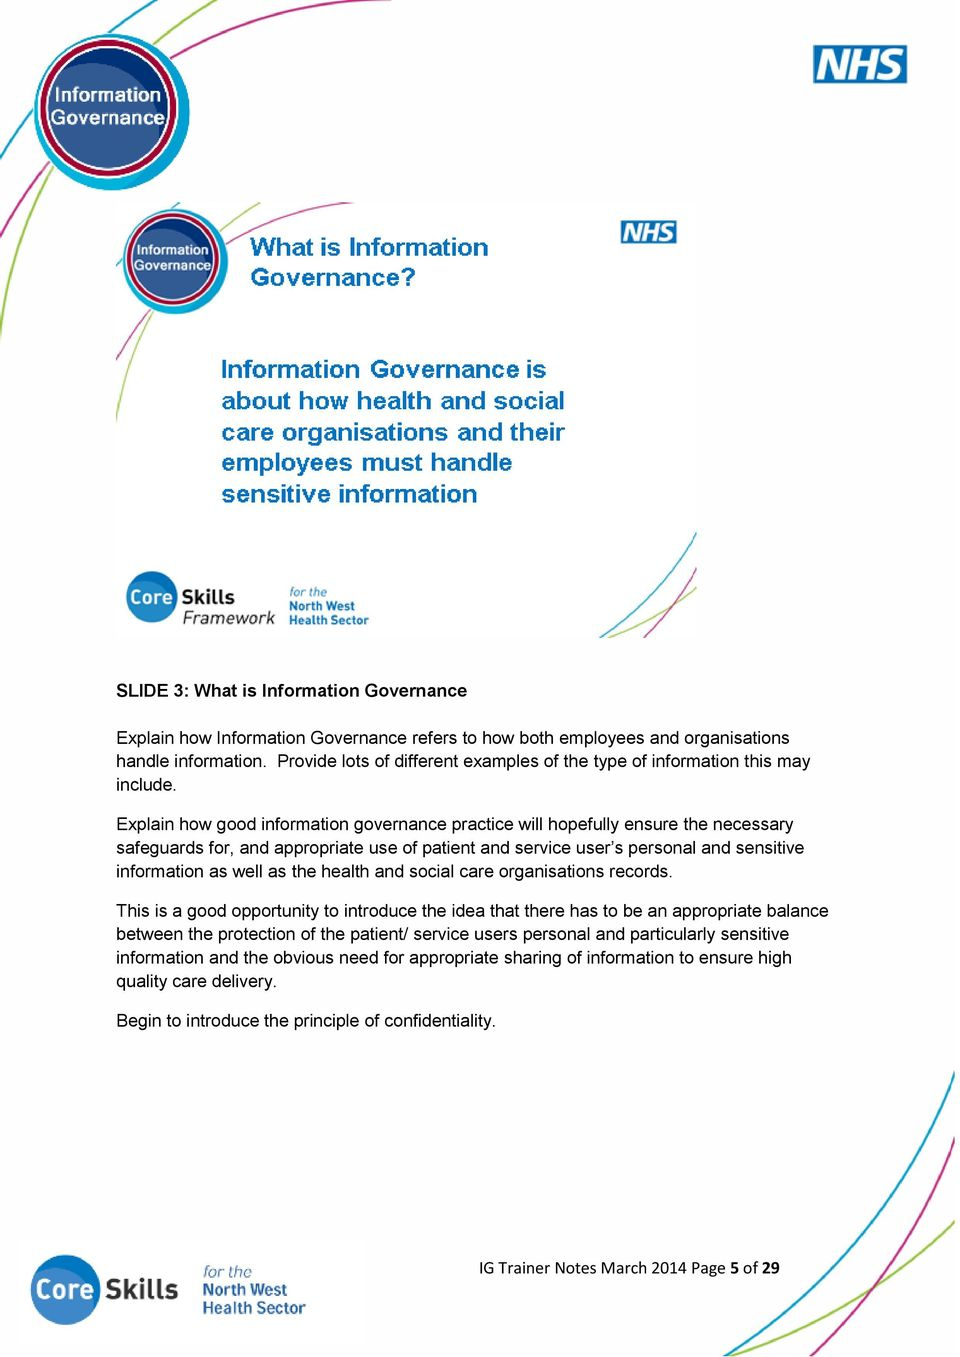 Explain how good information governance practice will hopefully ensure the necessary safeguards for, and appropriate use of patient and service user s personal and sensitive information as well as